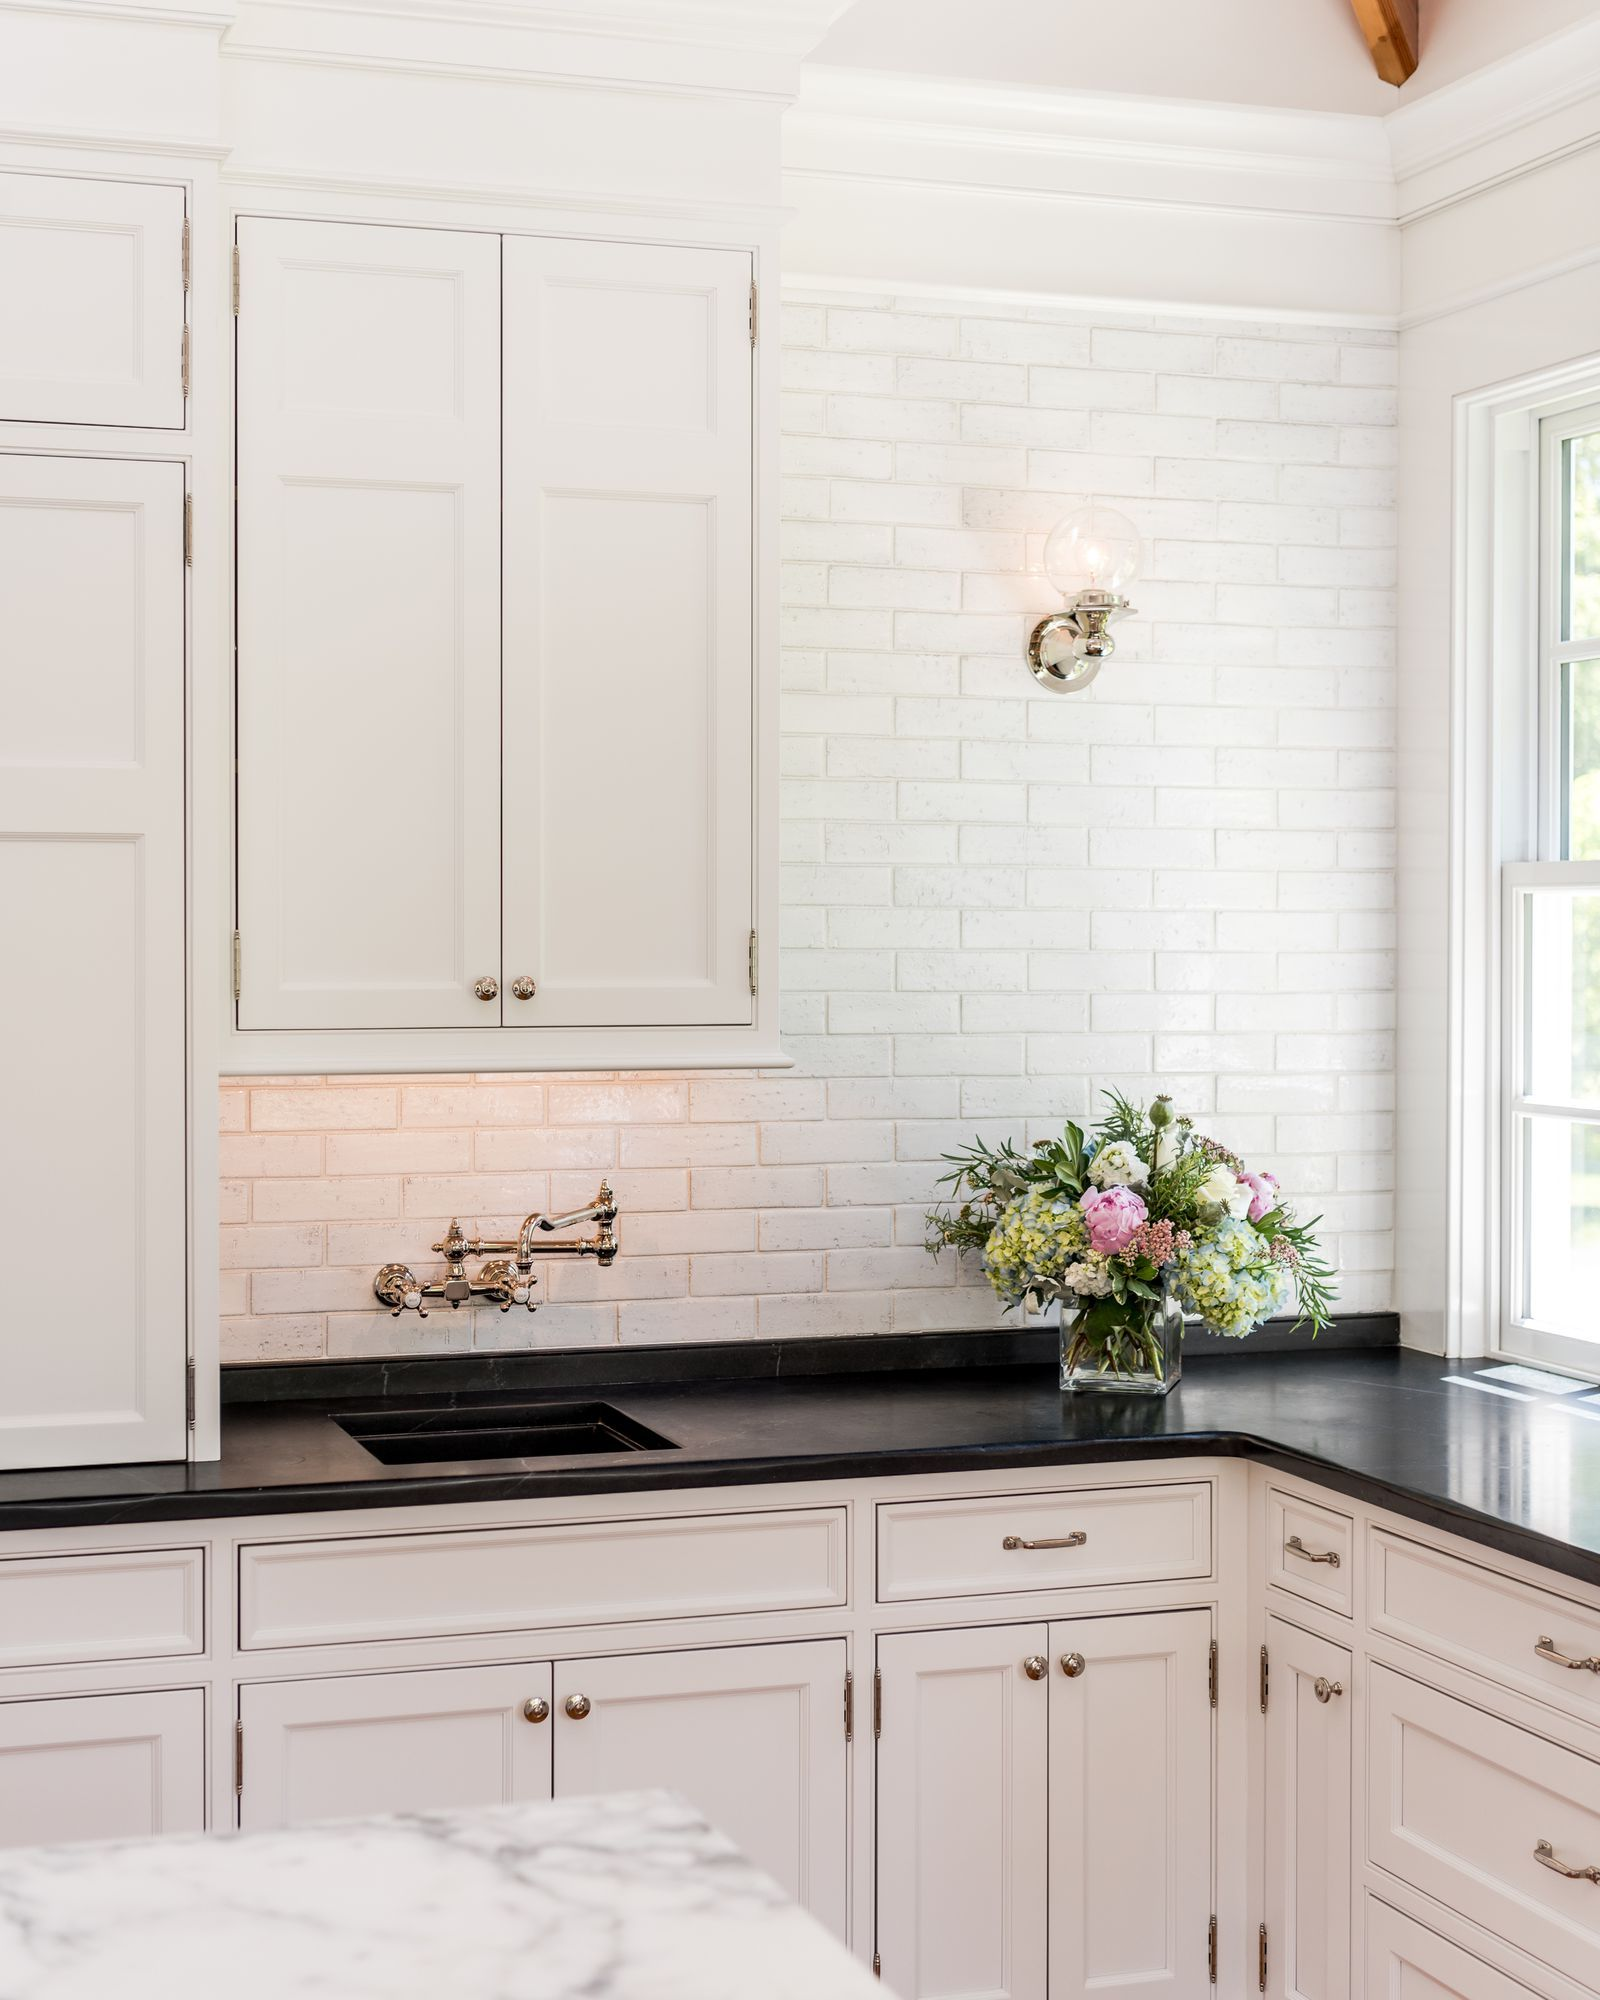 Period Kitchens Designs Renovation: 50 White Kitchen Cabinets To Brighten Up Your Cooking